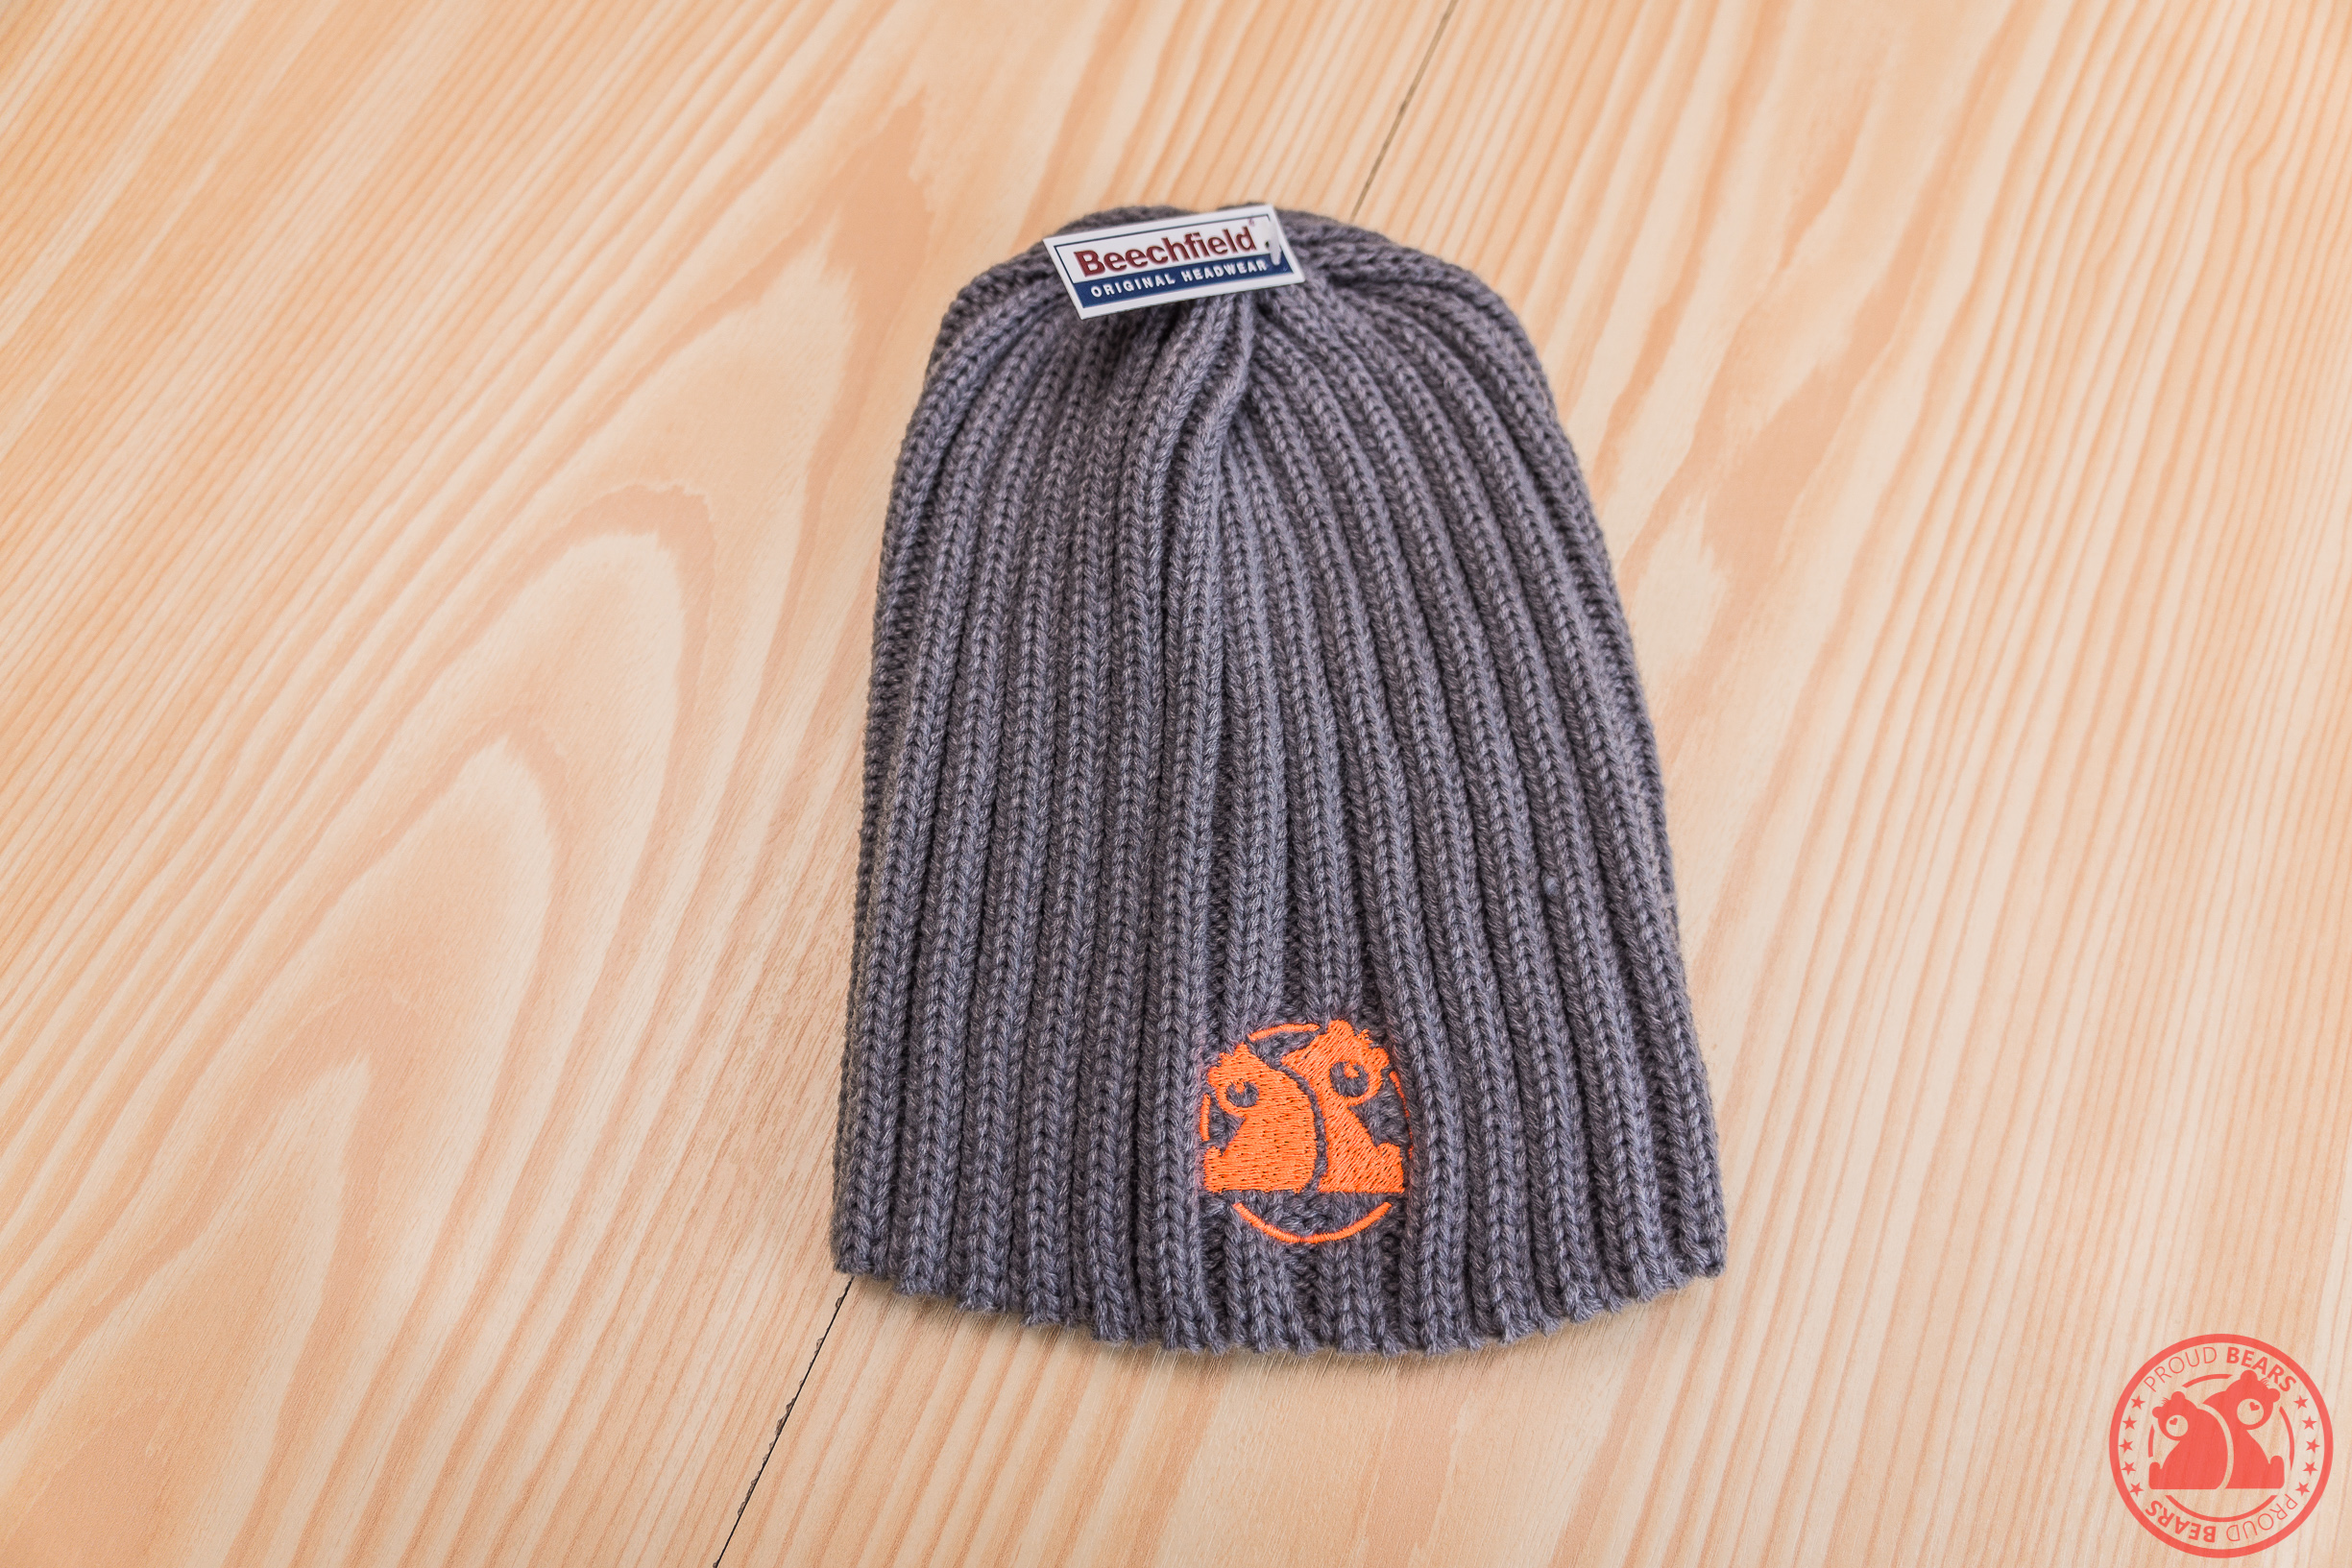 d5d931ed4dc ... Grey Beechfield Chunky Knitted Beanie Hat Orange Logo. Loading.